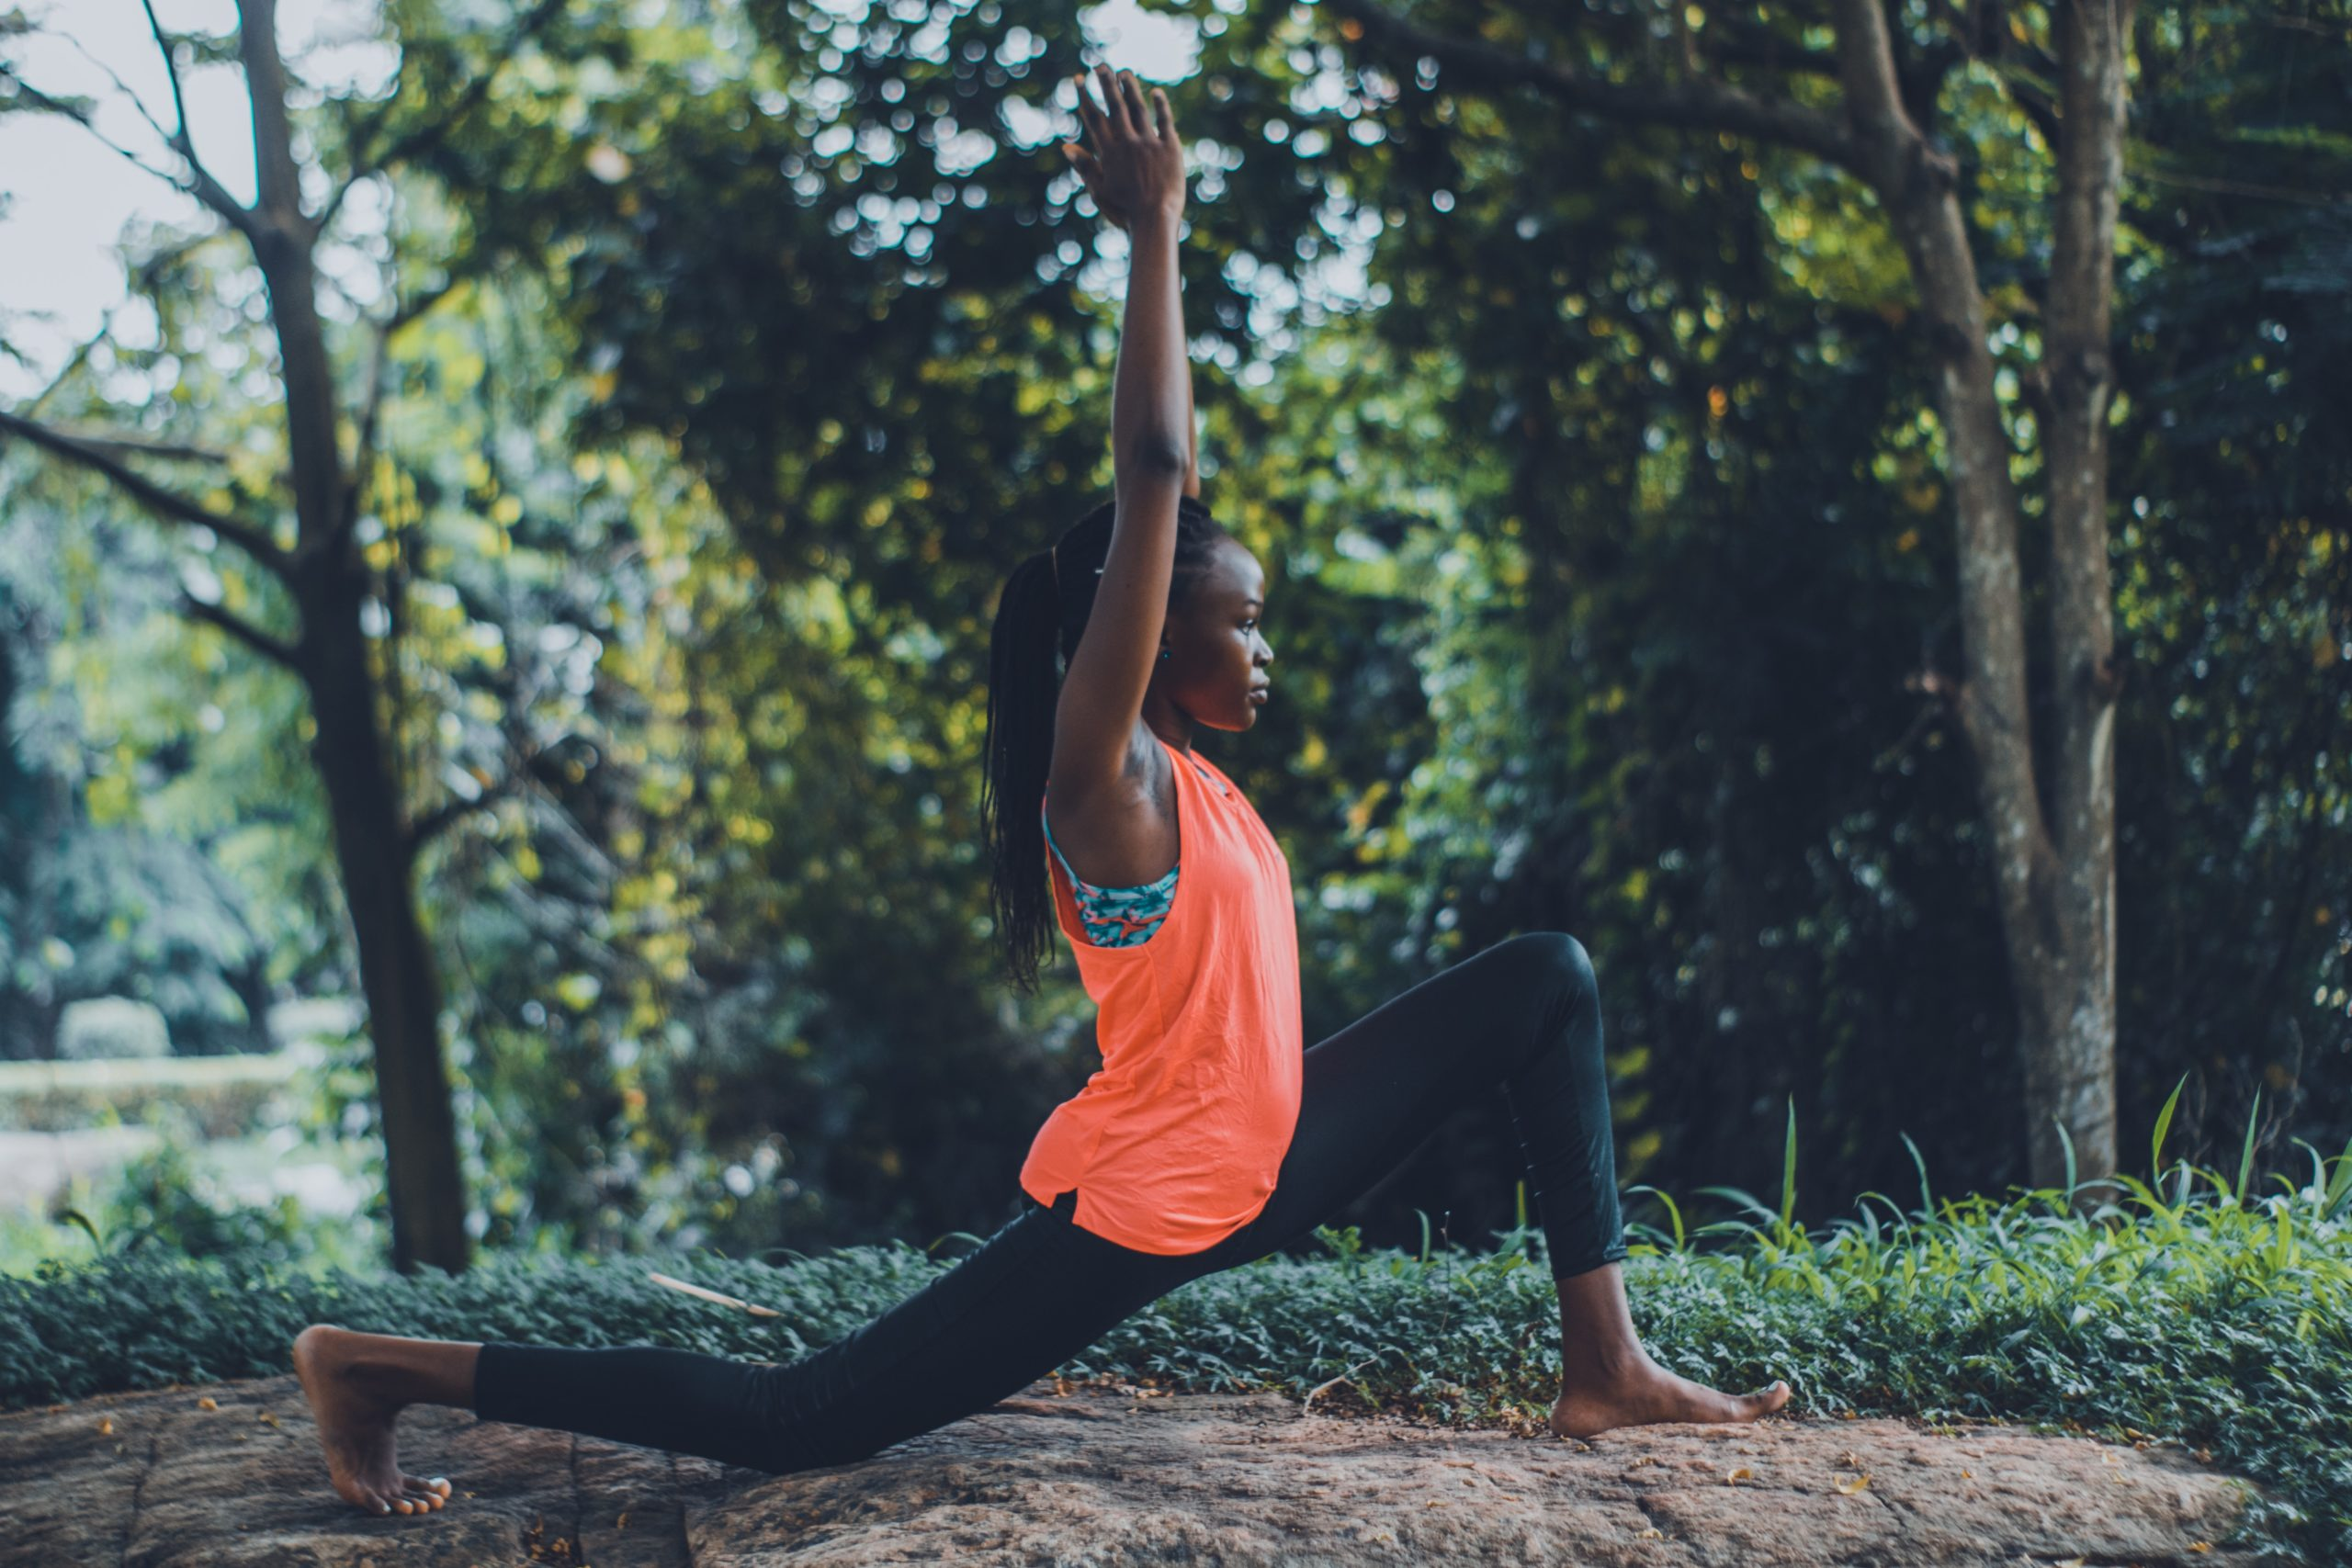 photo-of-woman-in-orange-tank-top-and-black-pants-striking-a-3658399